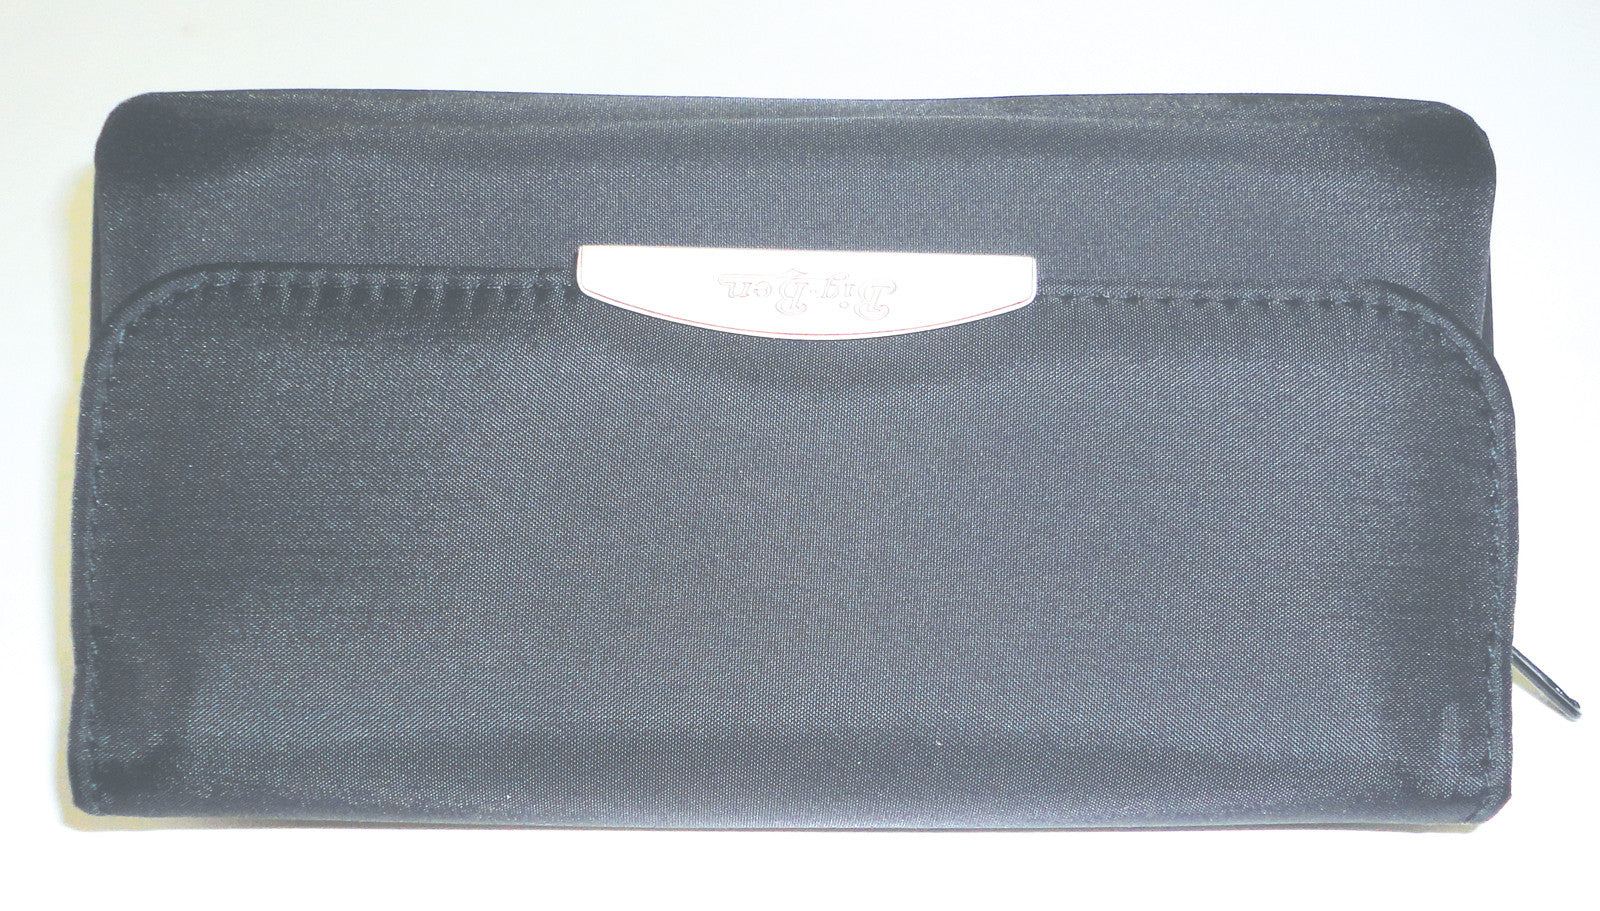 BigBen nylon pouch for 2 pipes & tobacco combination 743.284.410